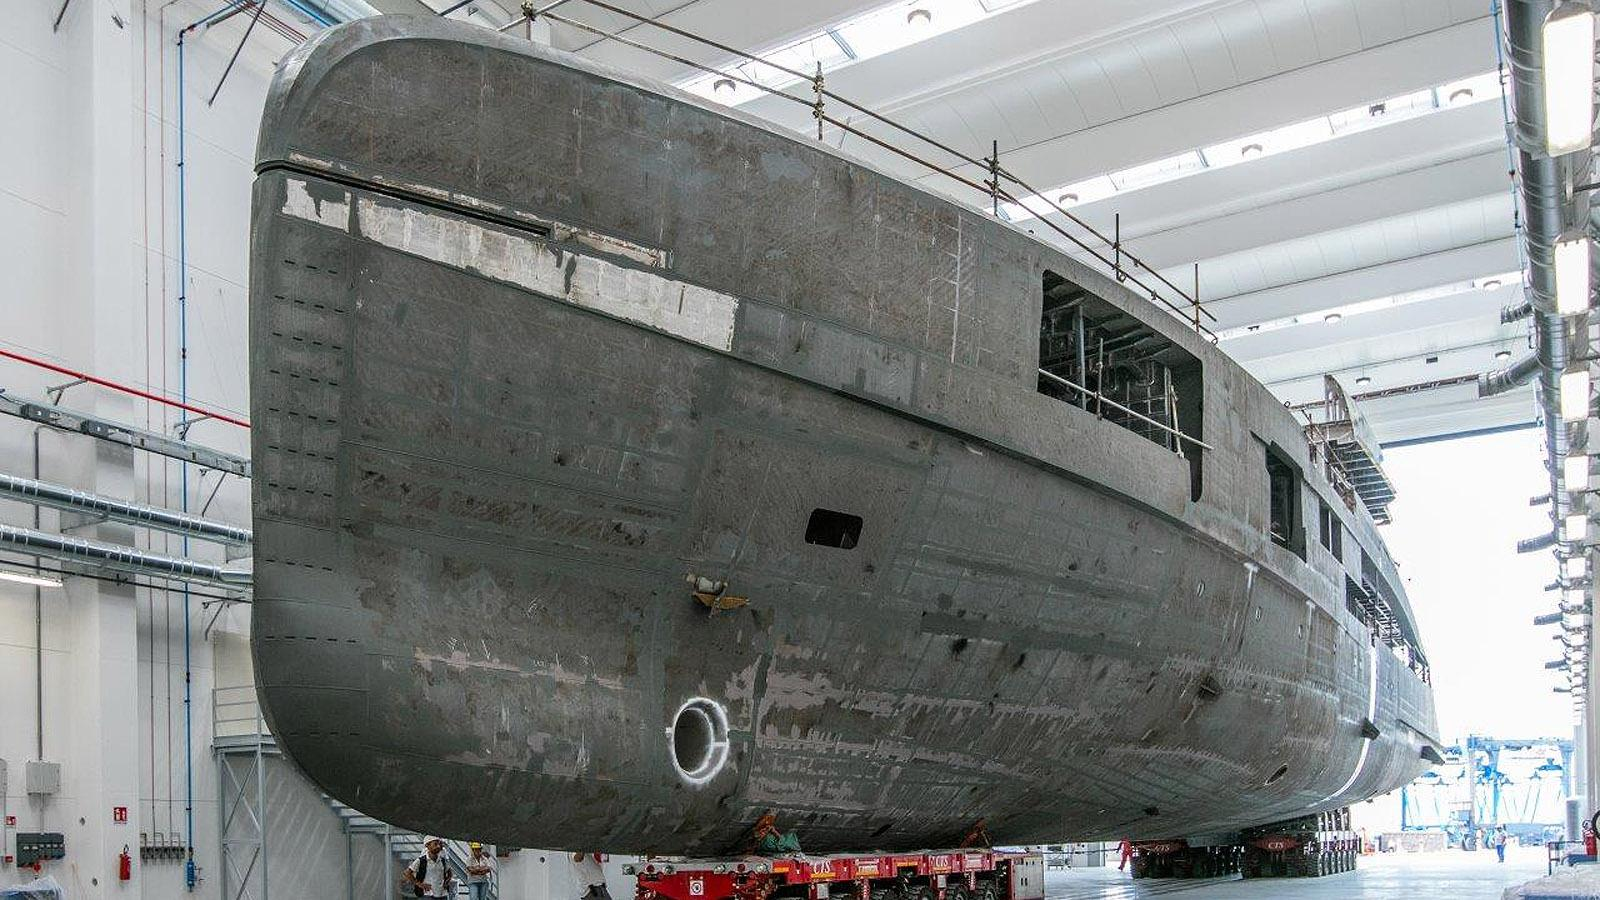 crn hull 137 motoryacht crn 2019 62m under construction